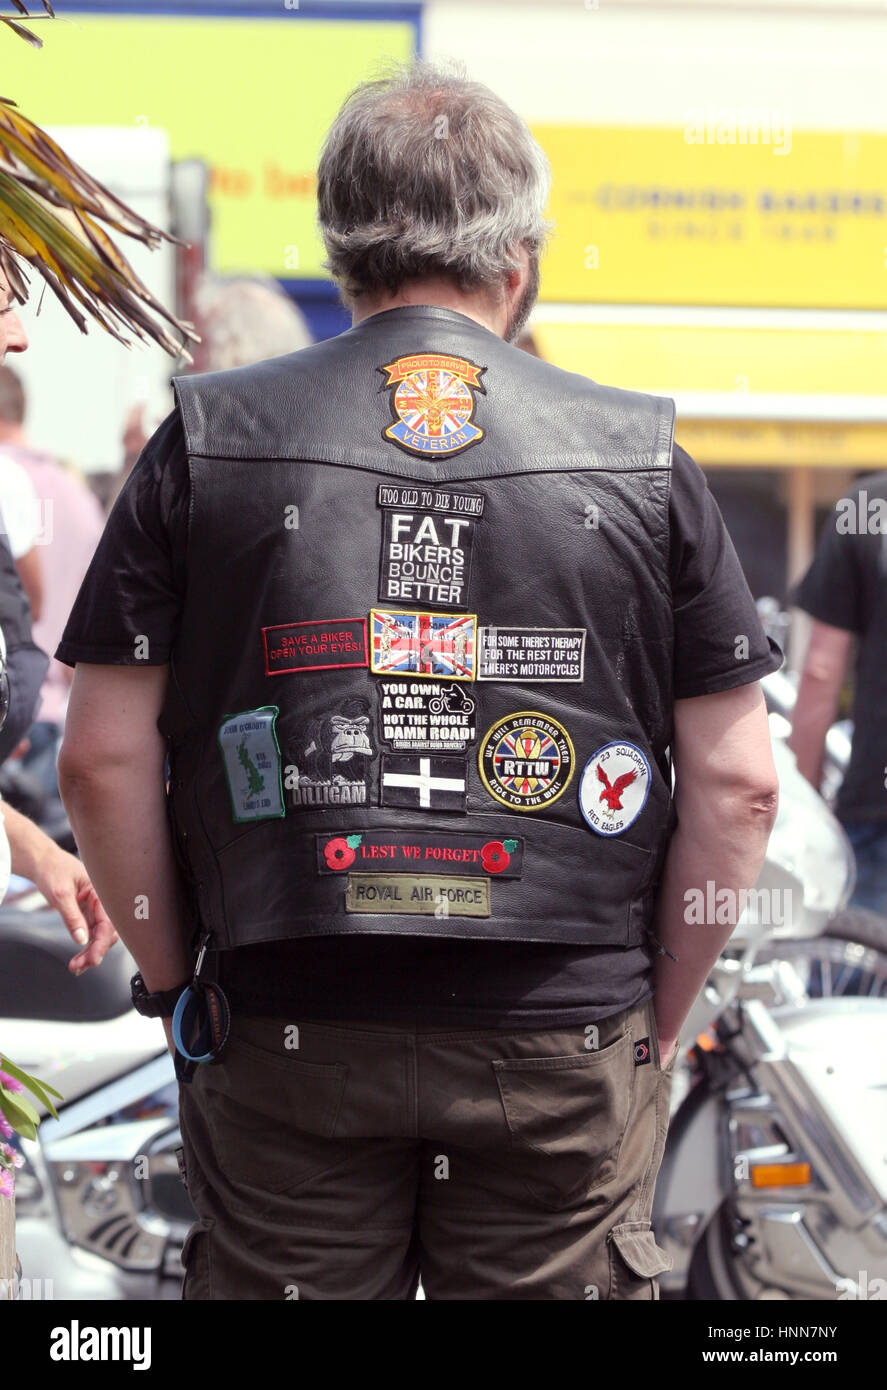 MOTORCYCLIST with his leader vest and brands 2015 at a biker gathering in Truro Cornwall - Stock Image